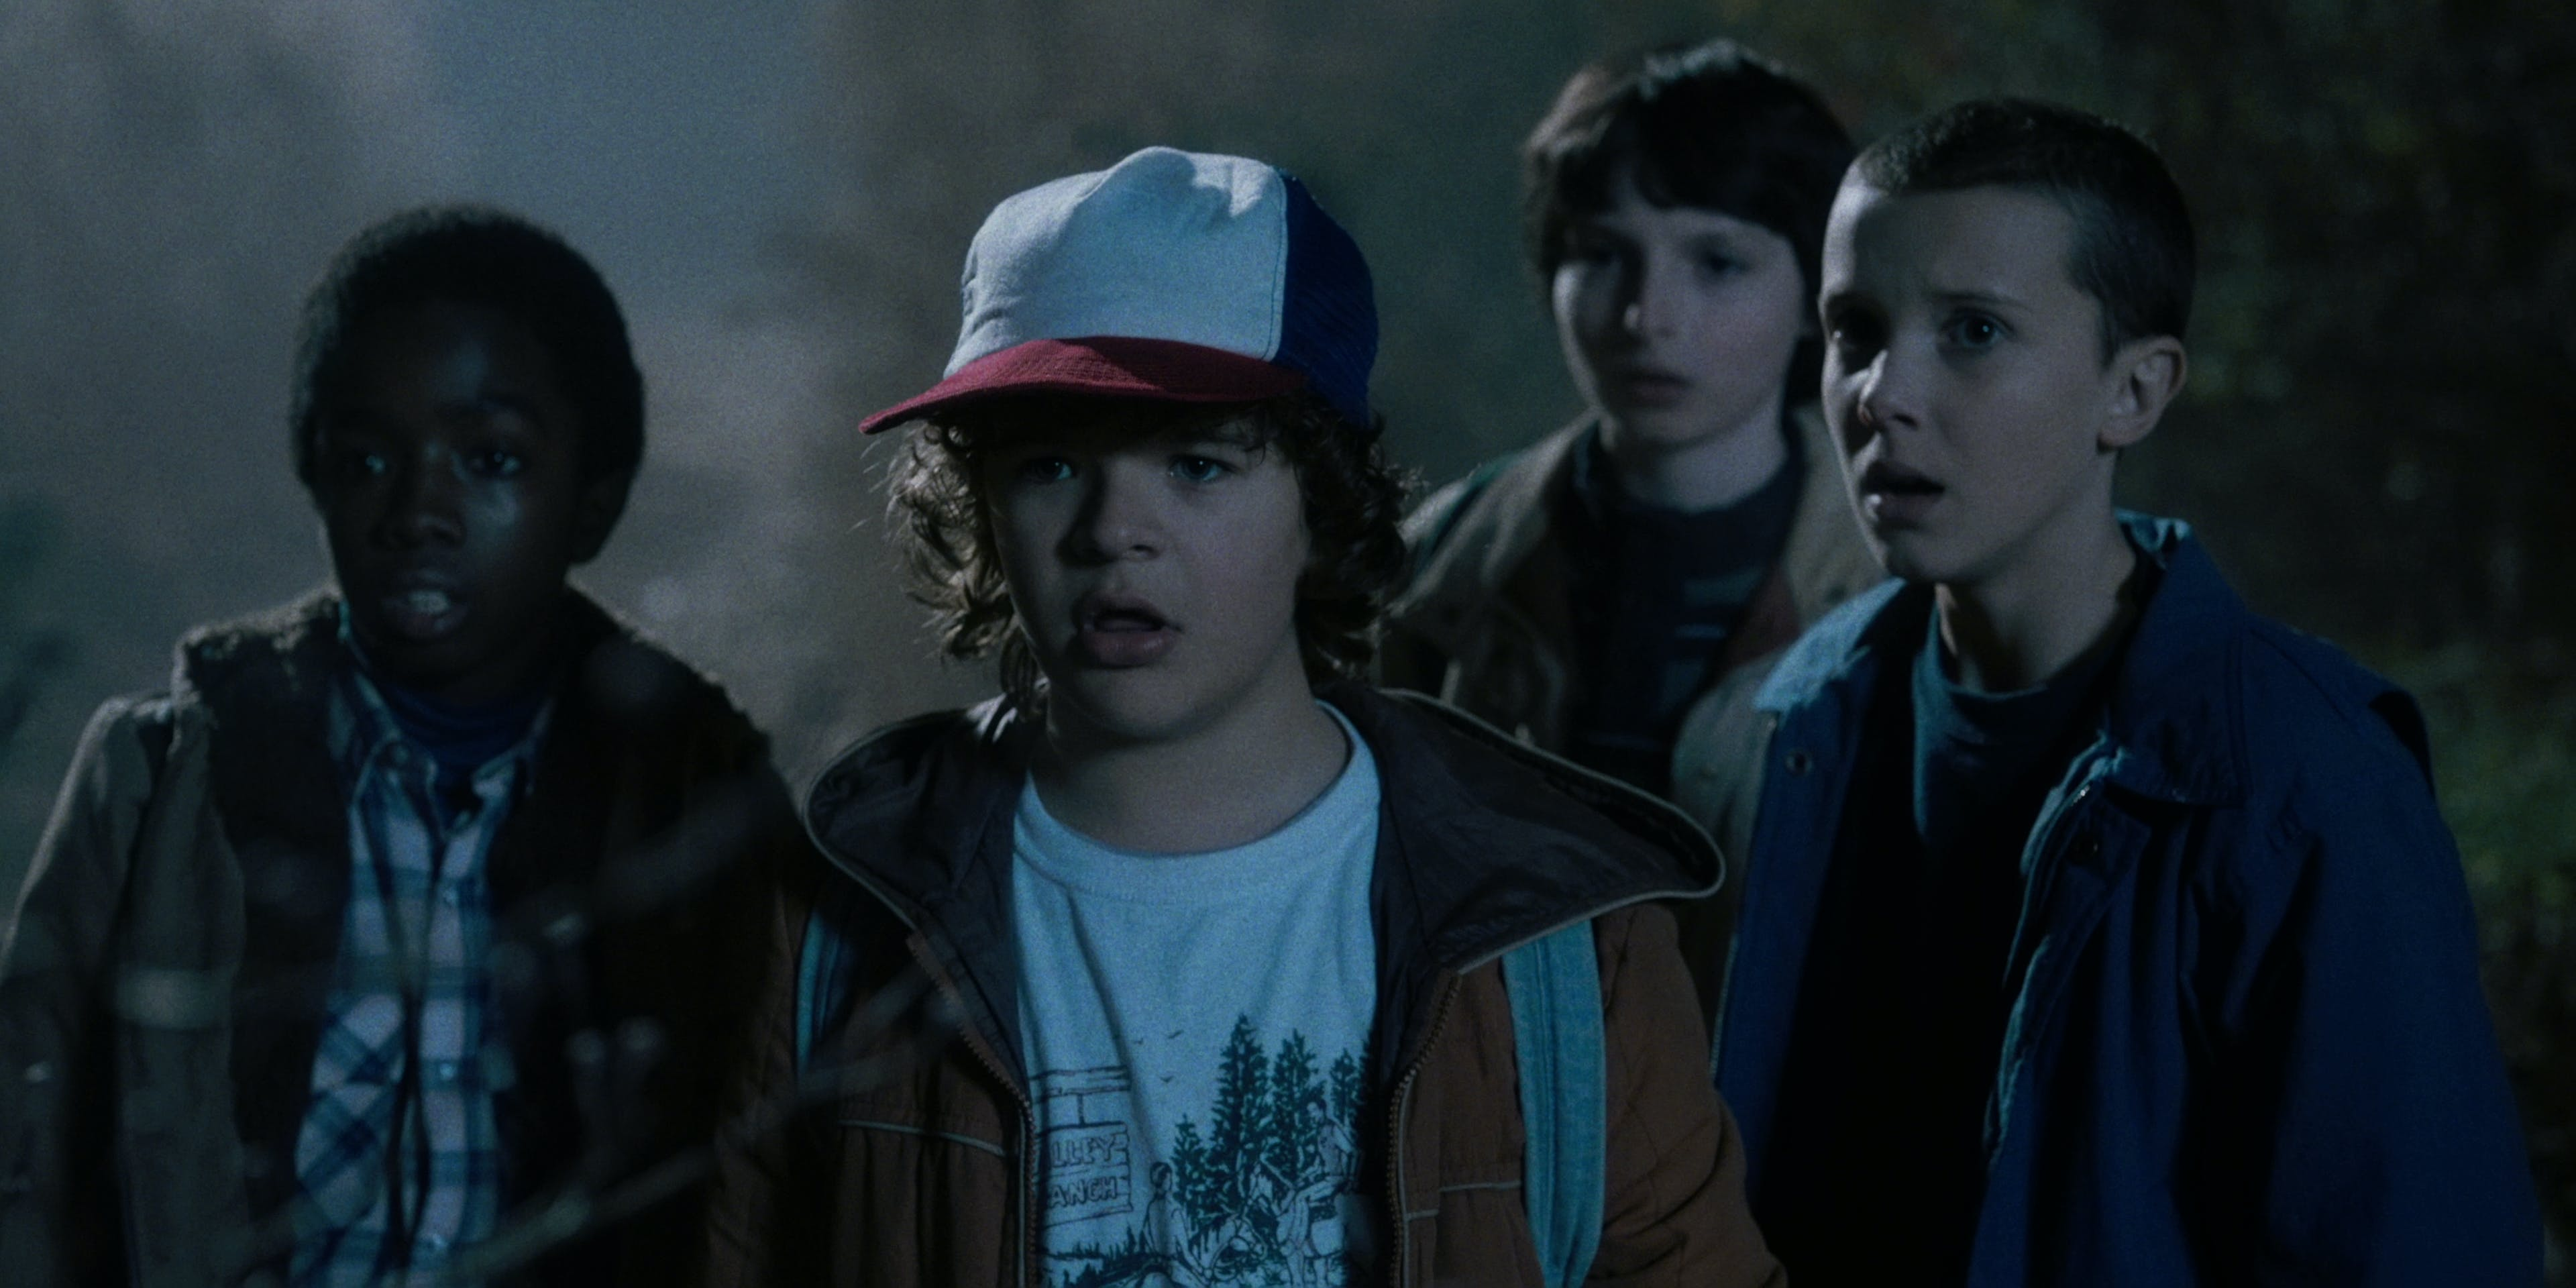 What Do the 'Stranger Things' Season 2 Chapter Titles Mean?